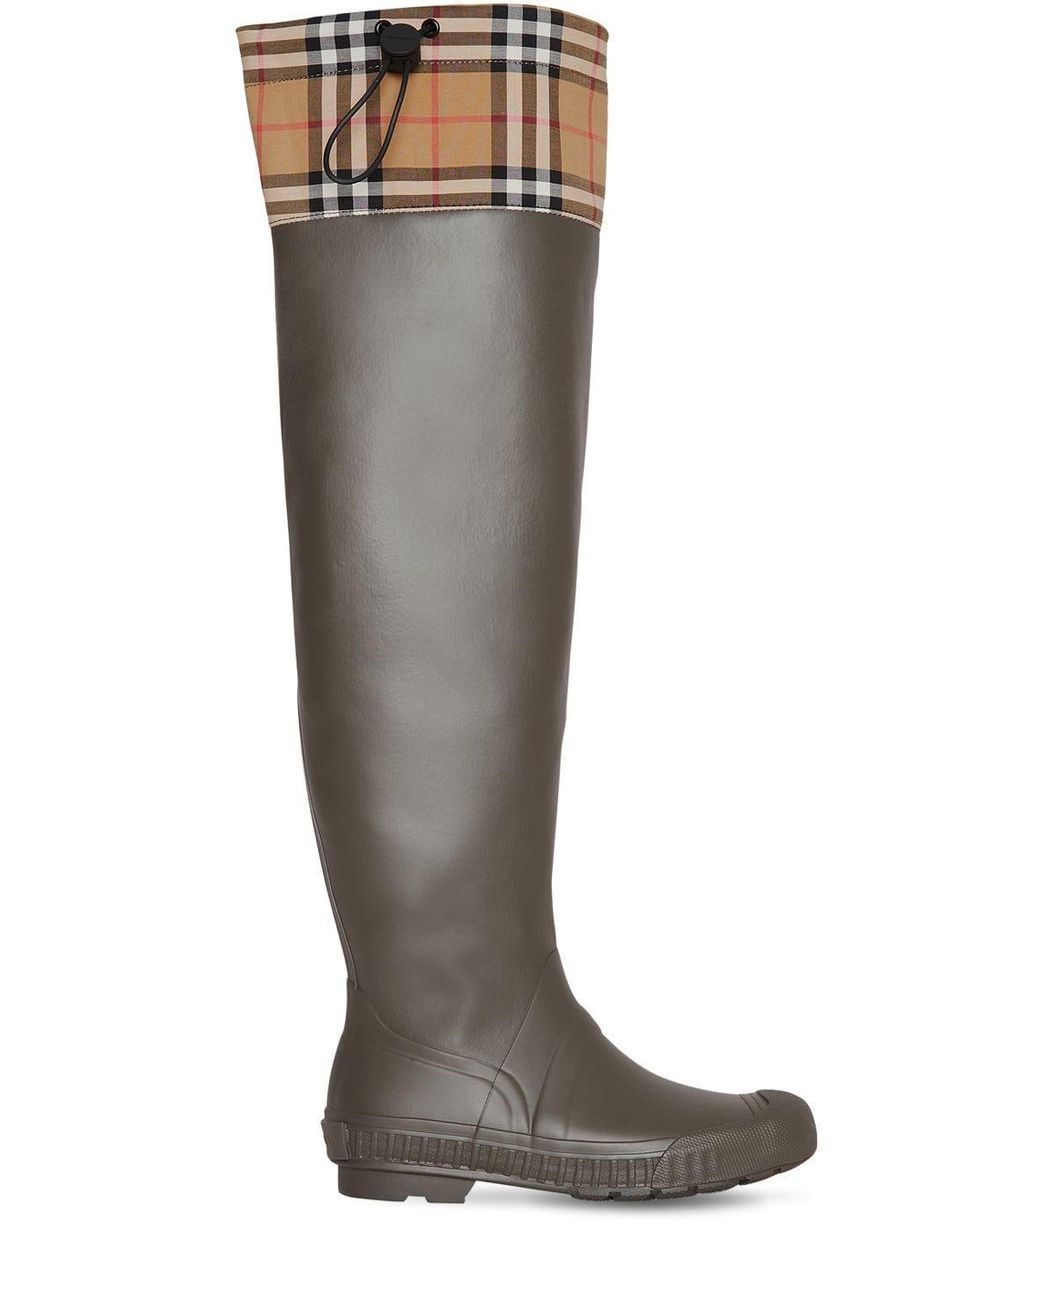 b5103d033dfe Burberry 20mm Freddy Rubber & Check Boots in Green - Save 49% - Lyst